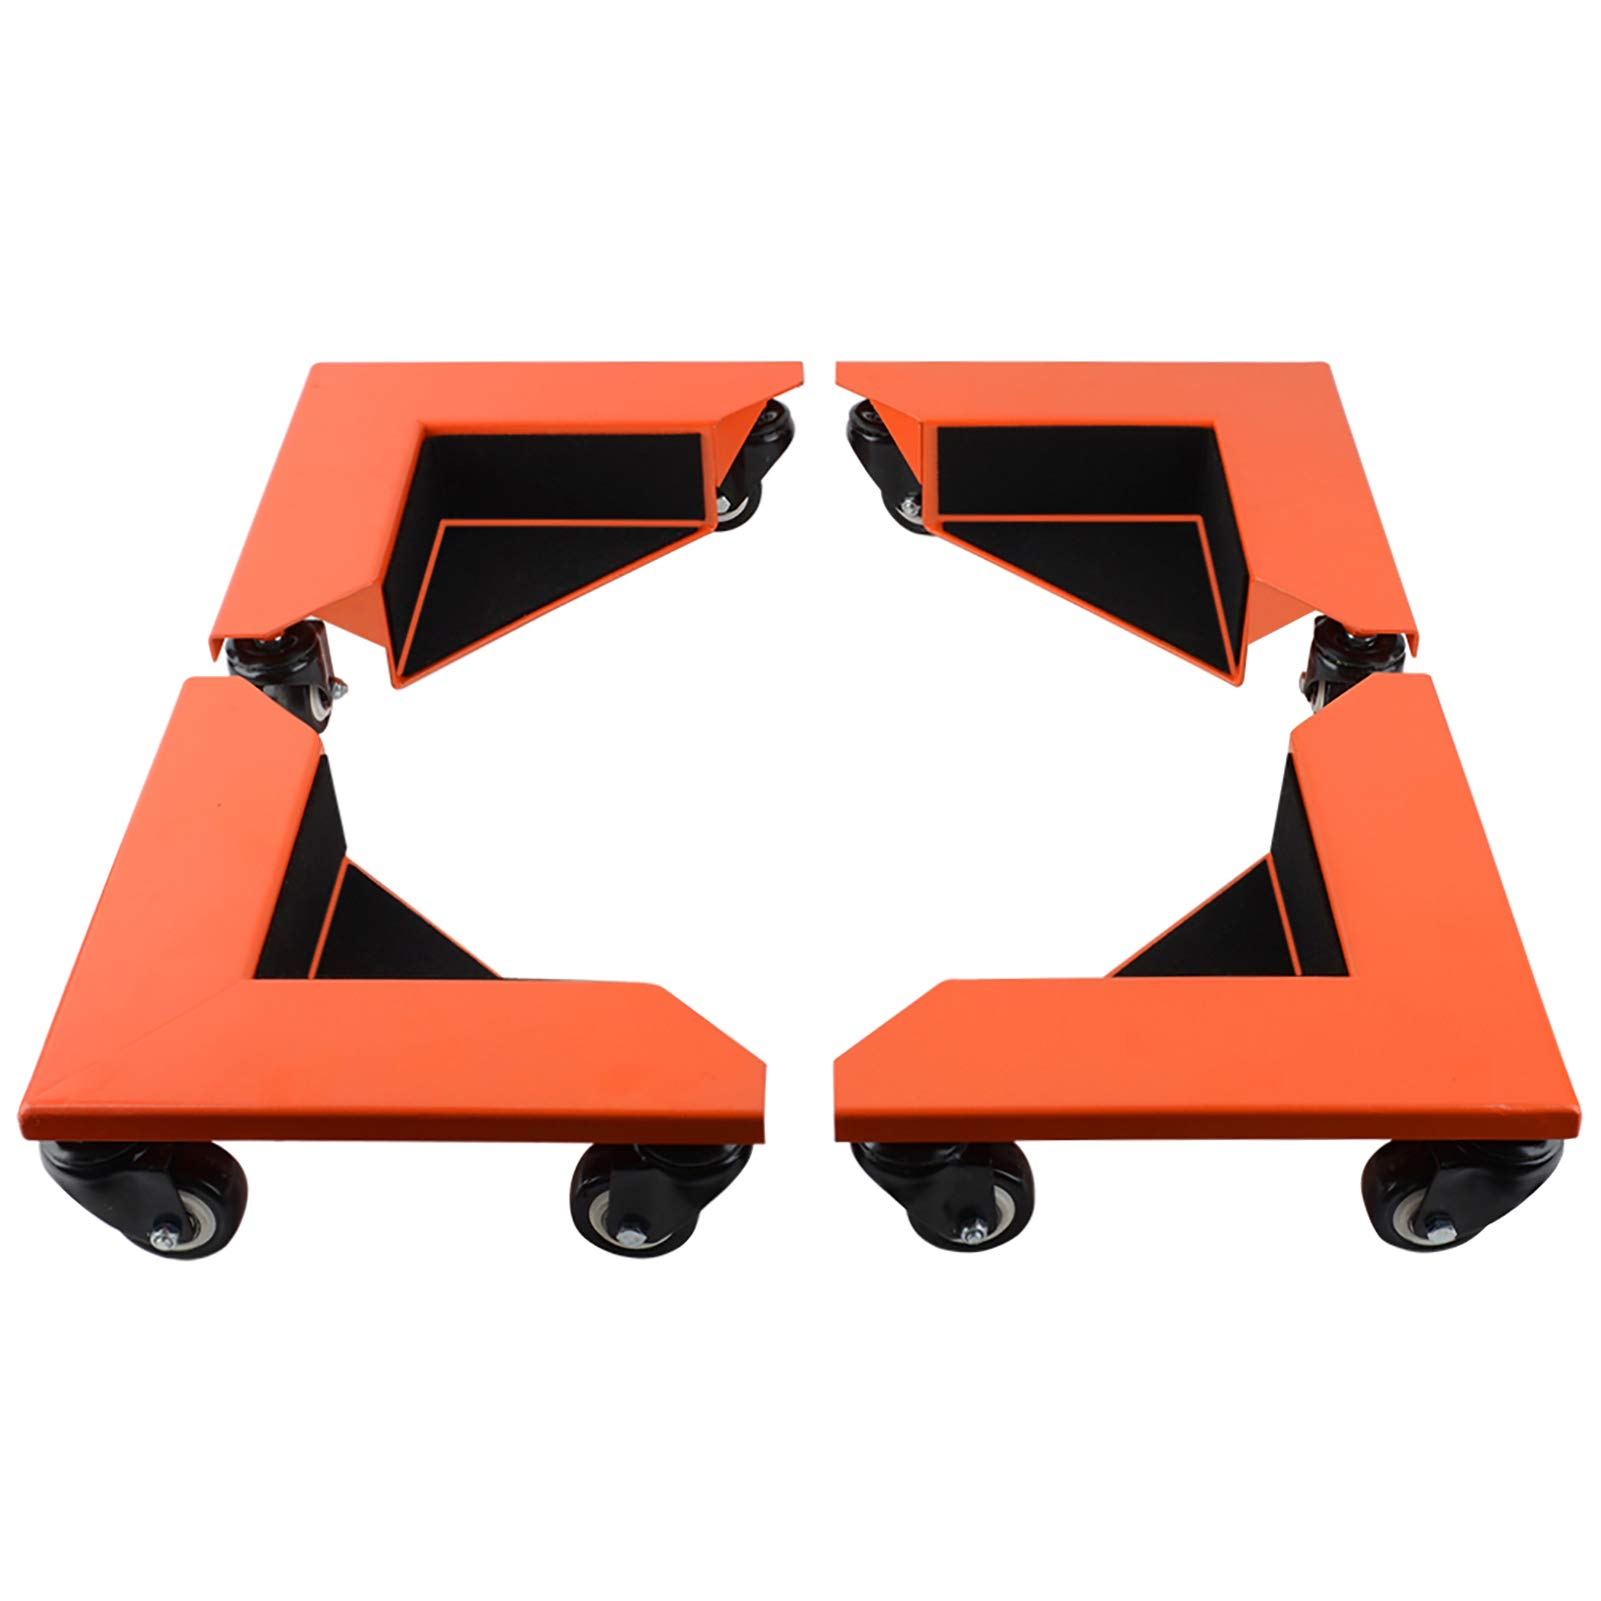 SPACEKEEPER Furniture Mover Dolly 4 Pack 6-Inch Steel Tri-Dolly 500 Lbs Capacity Each Pack 3 Wheels Mover Dollys for Moving Heavy Furniture